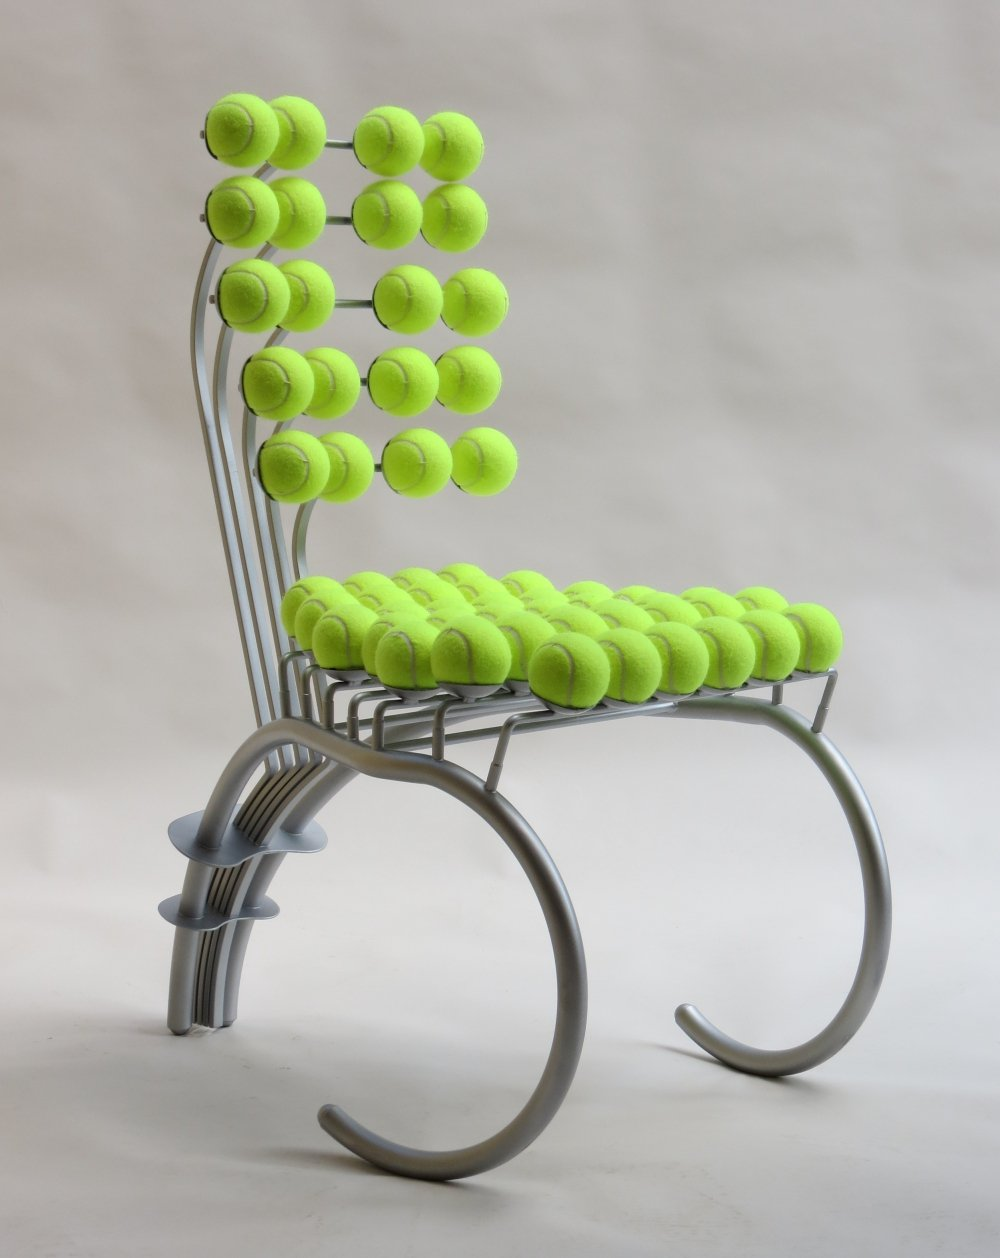 Bespoke Sculptural Tennis Ball Chair, 1980s